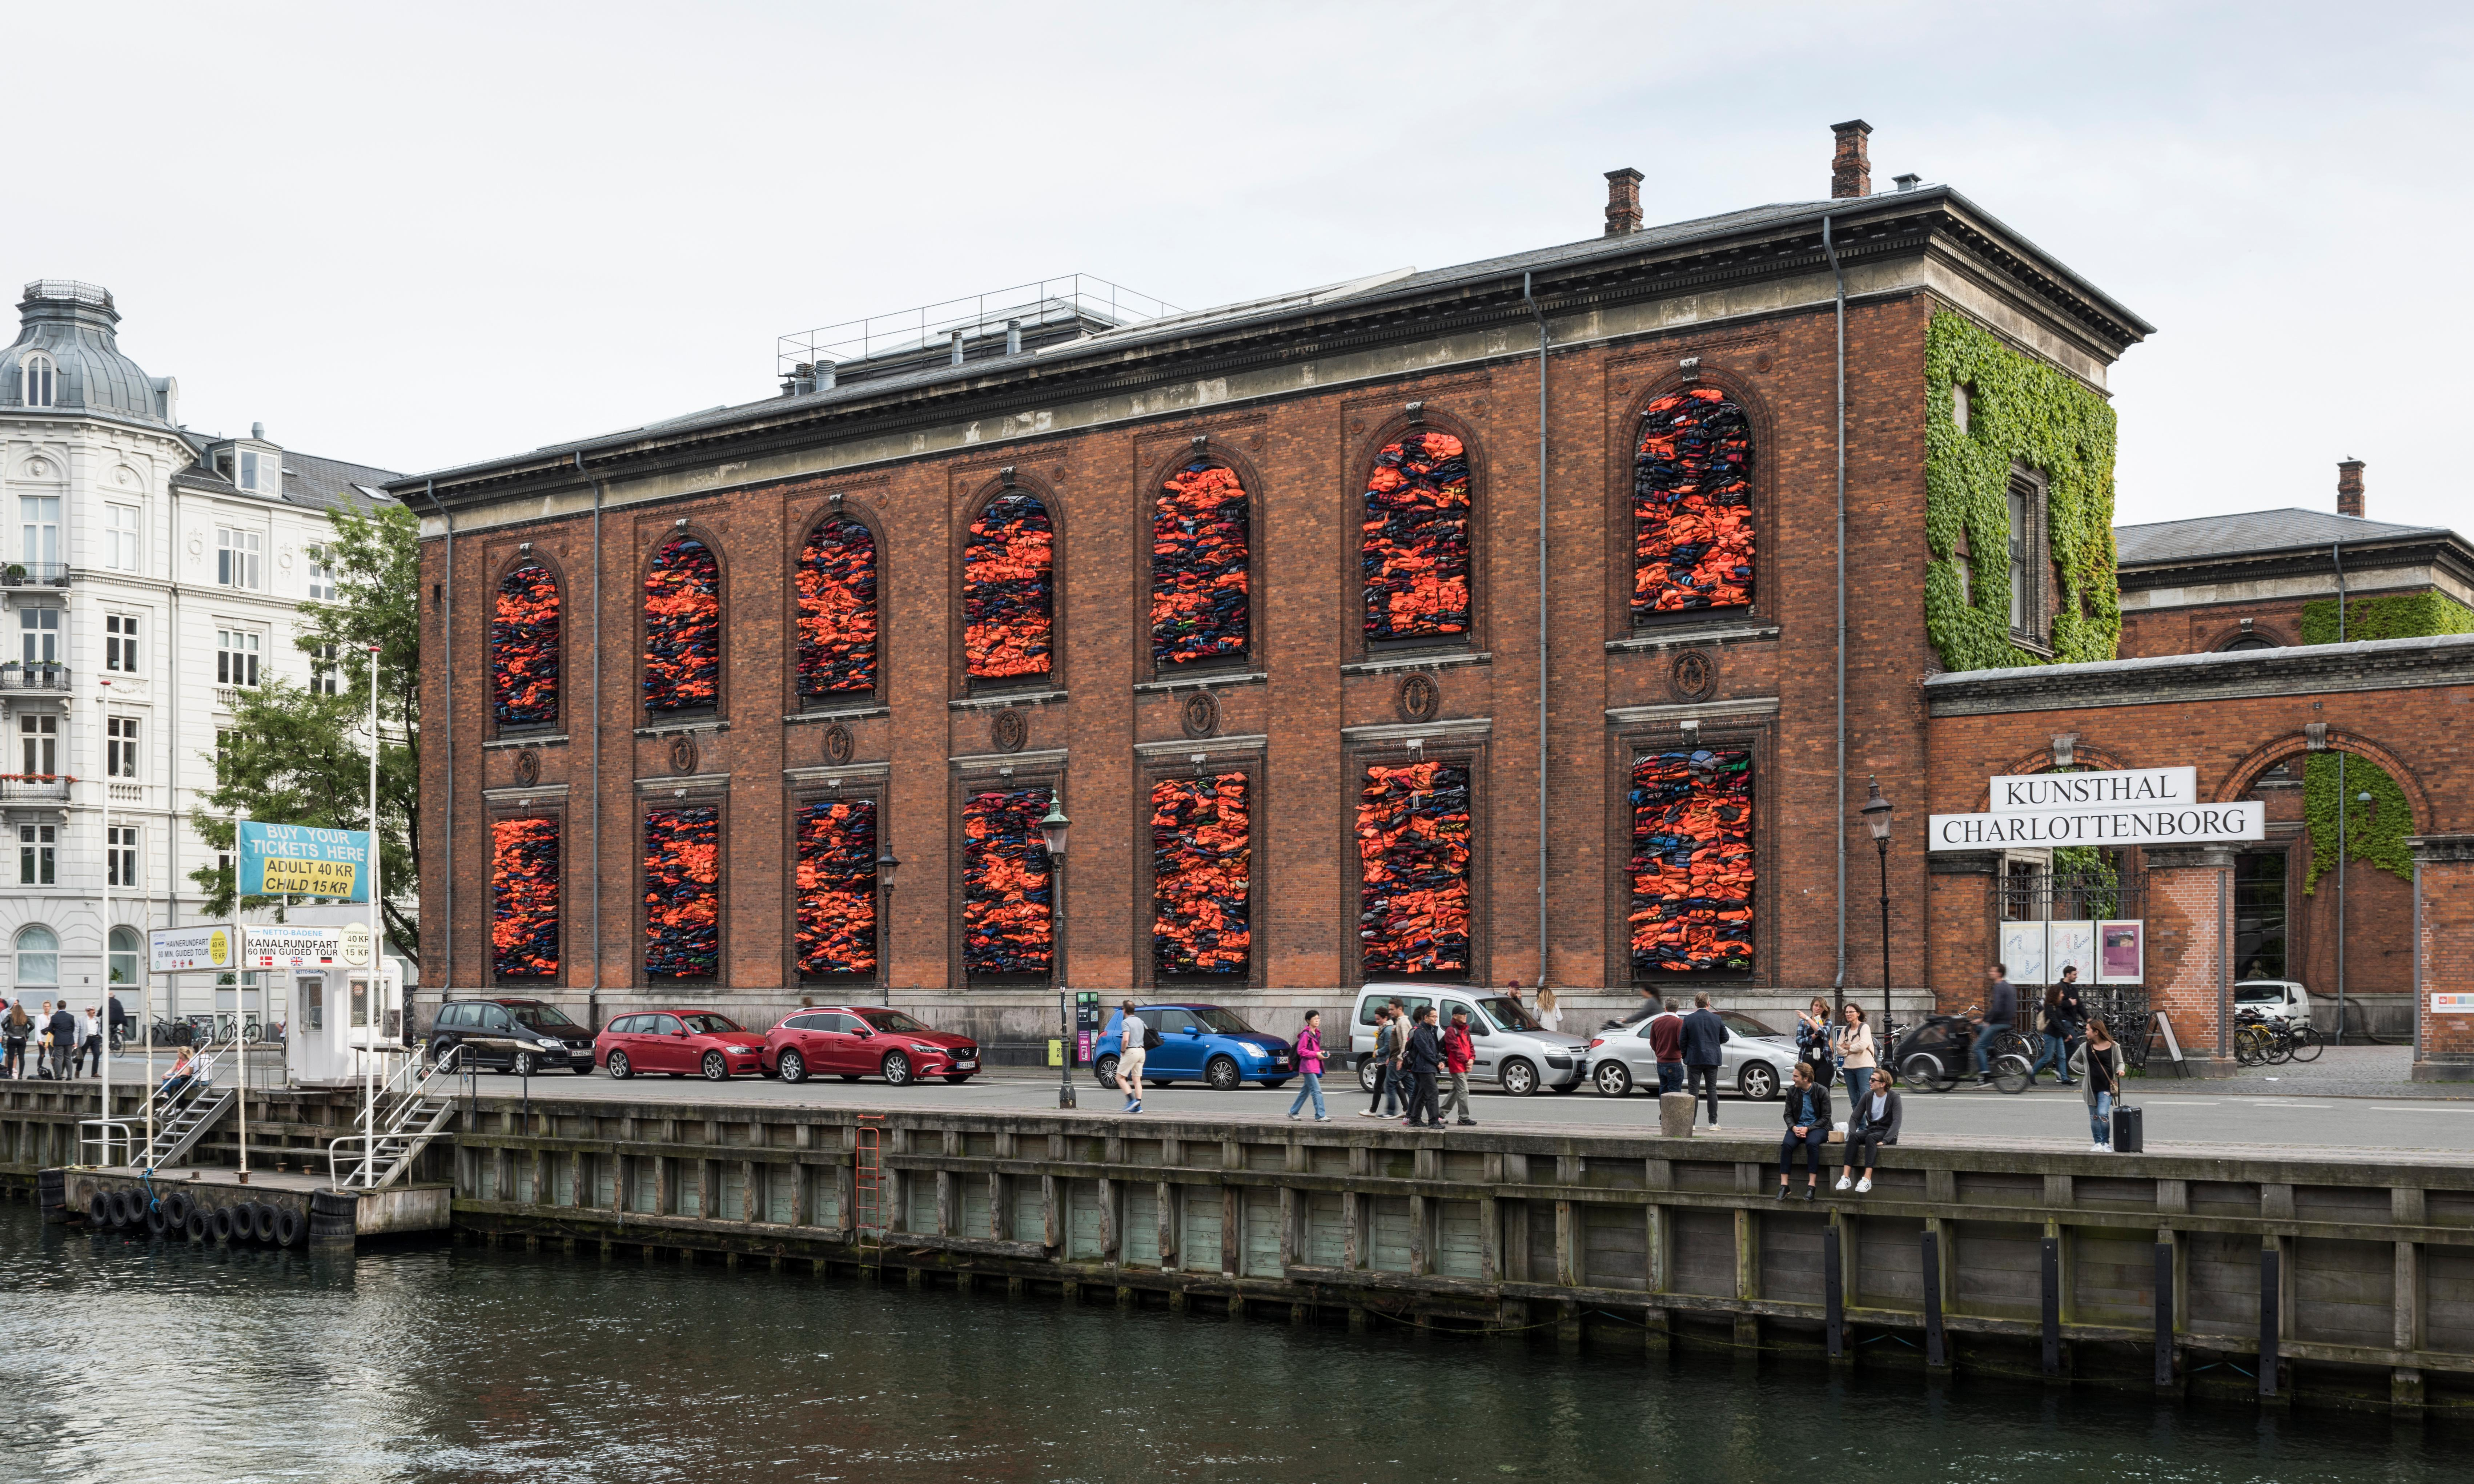 Ai Weiwei: my art was used to sell cars – but I'm fighting back